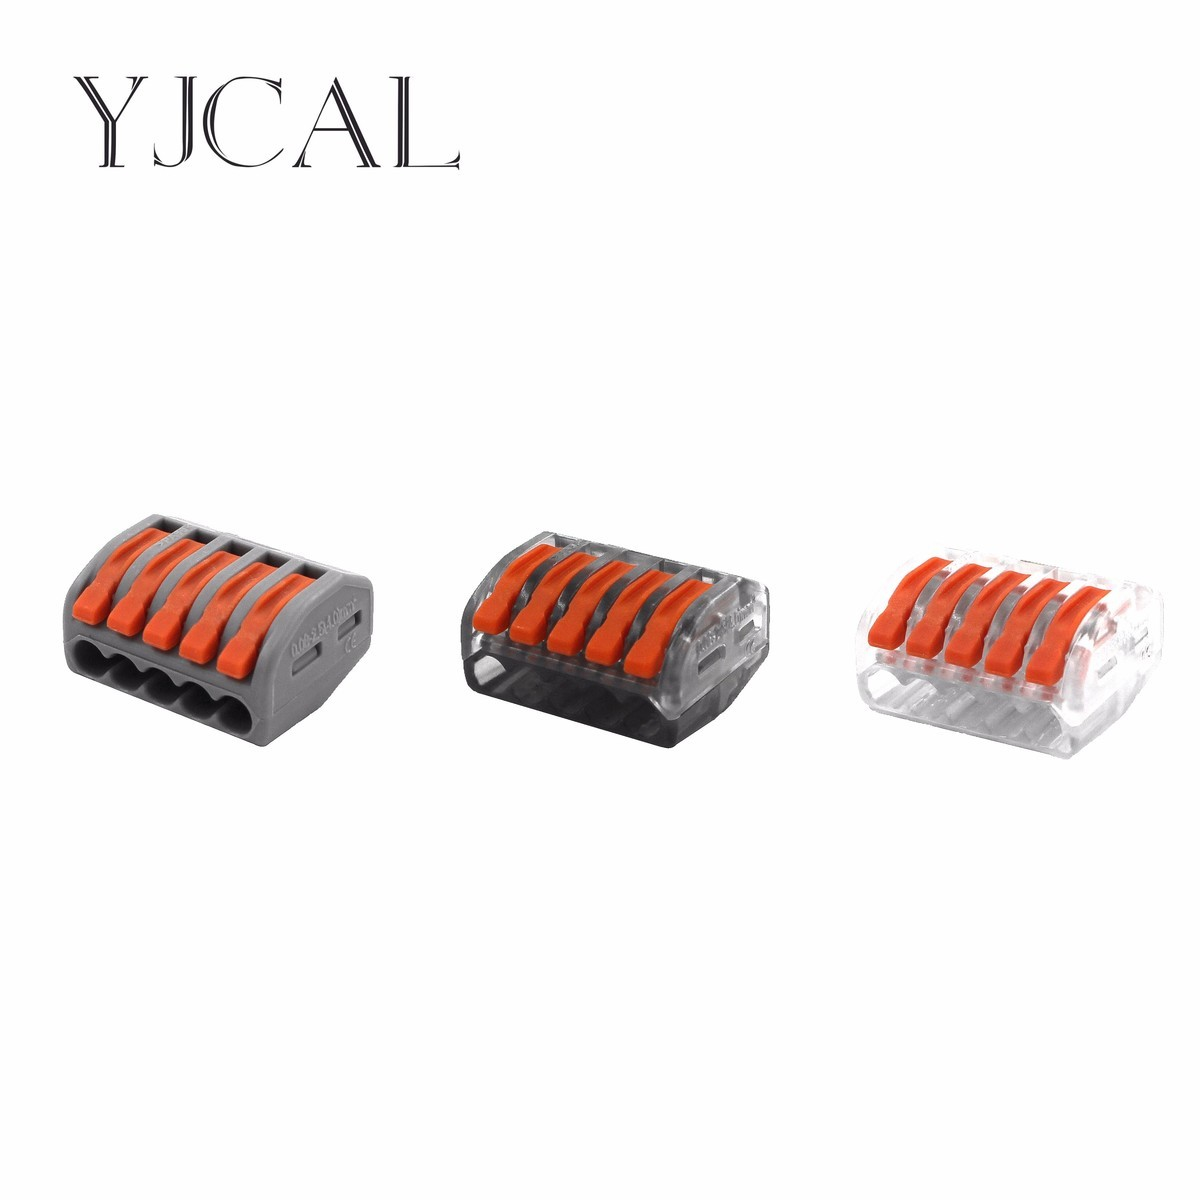 Wago Type 222-415 10PCS Universal Compact Wiring Conector Terminal Block Connectors Terminator Wire Connector AWG 28-12 kerr ph jones c straightforward 2ed int class audio cds